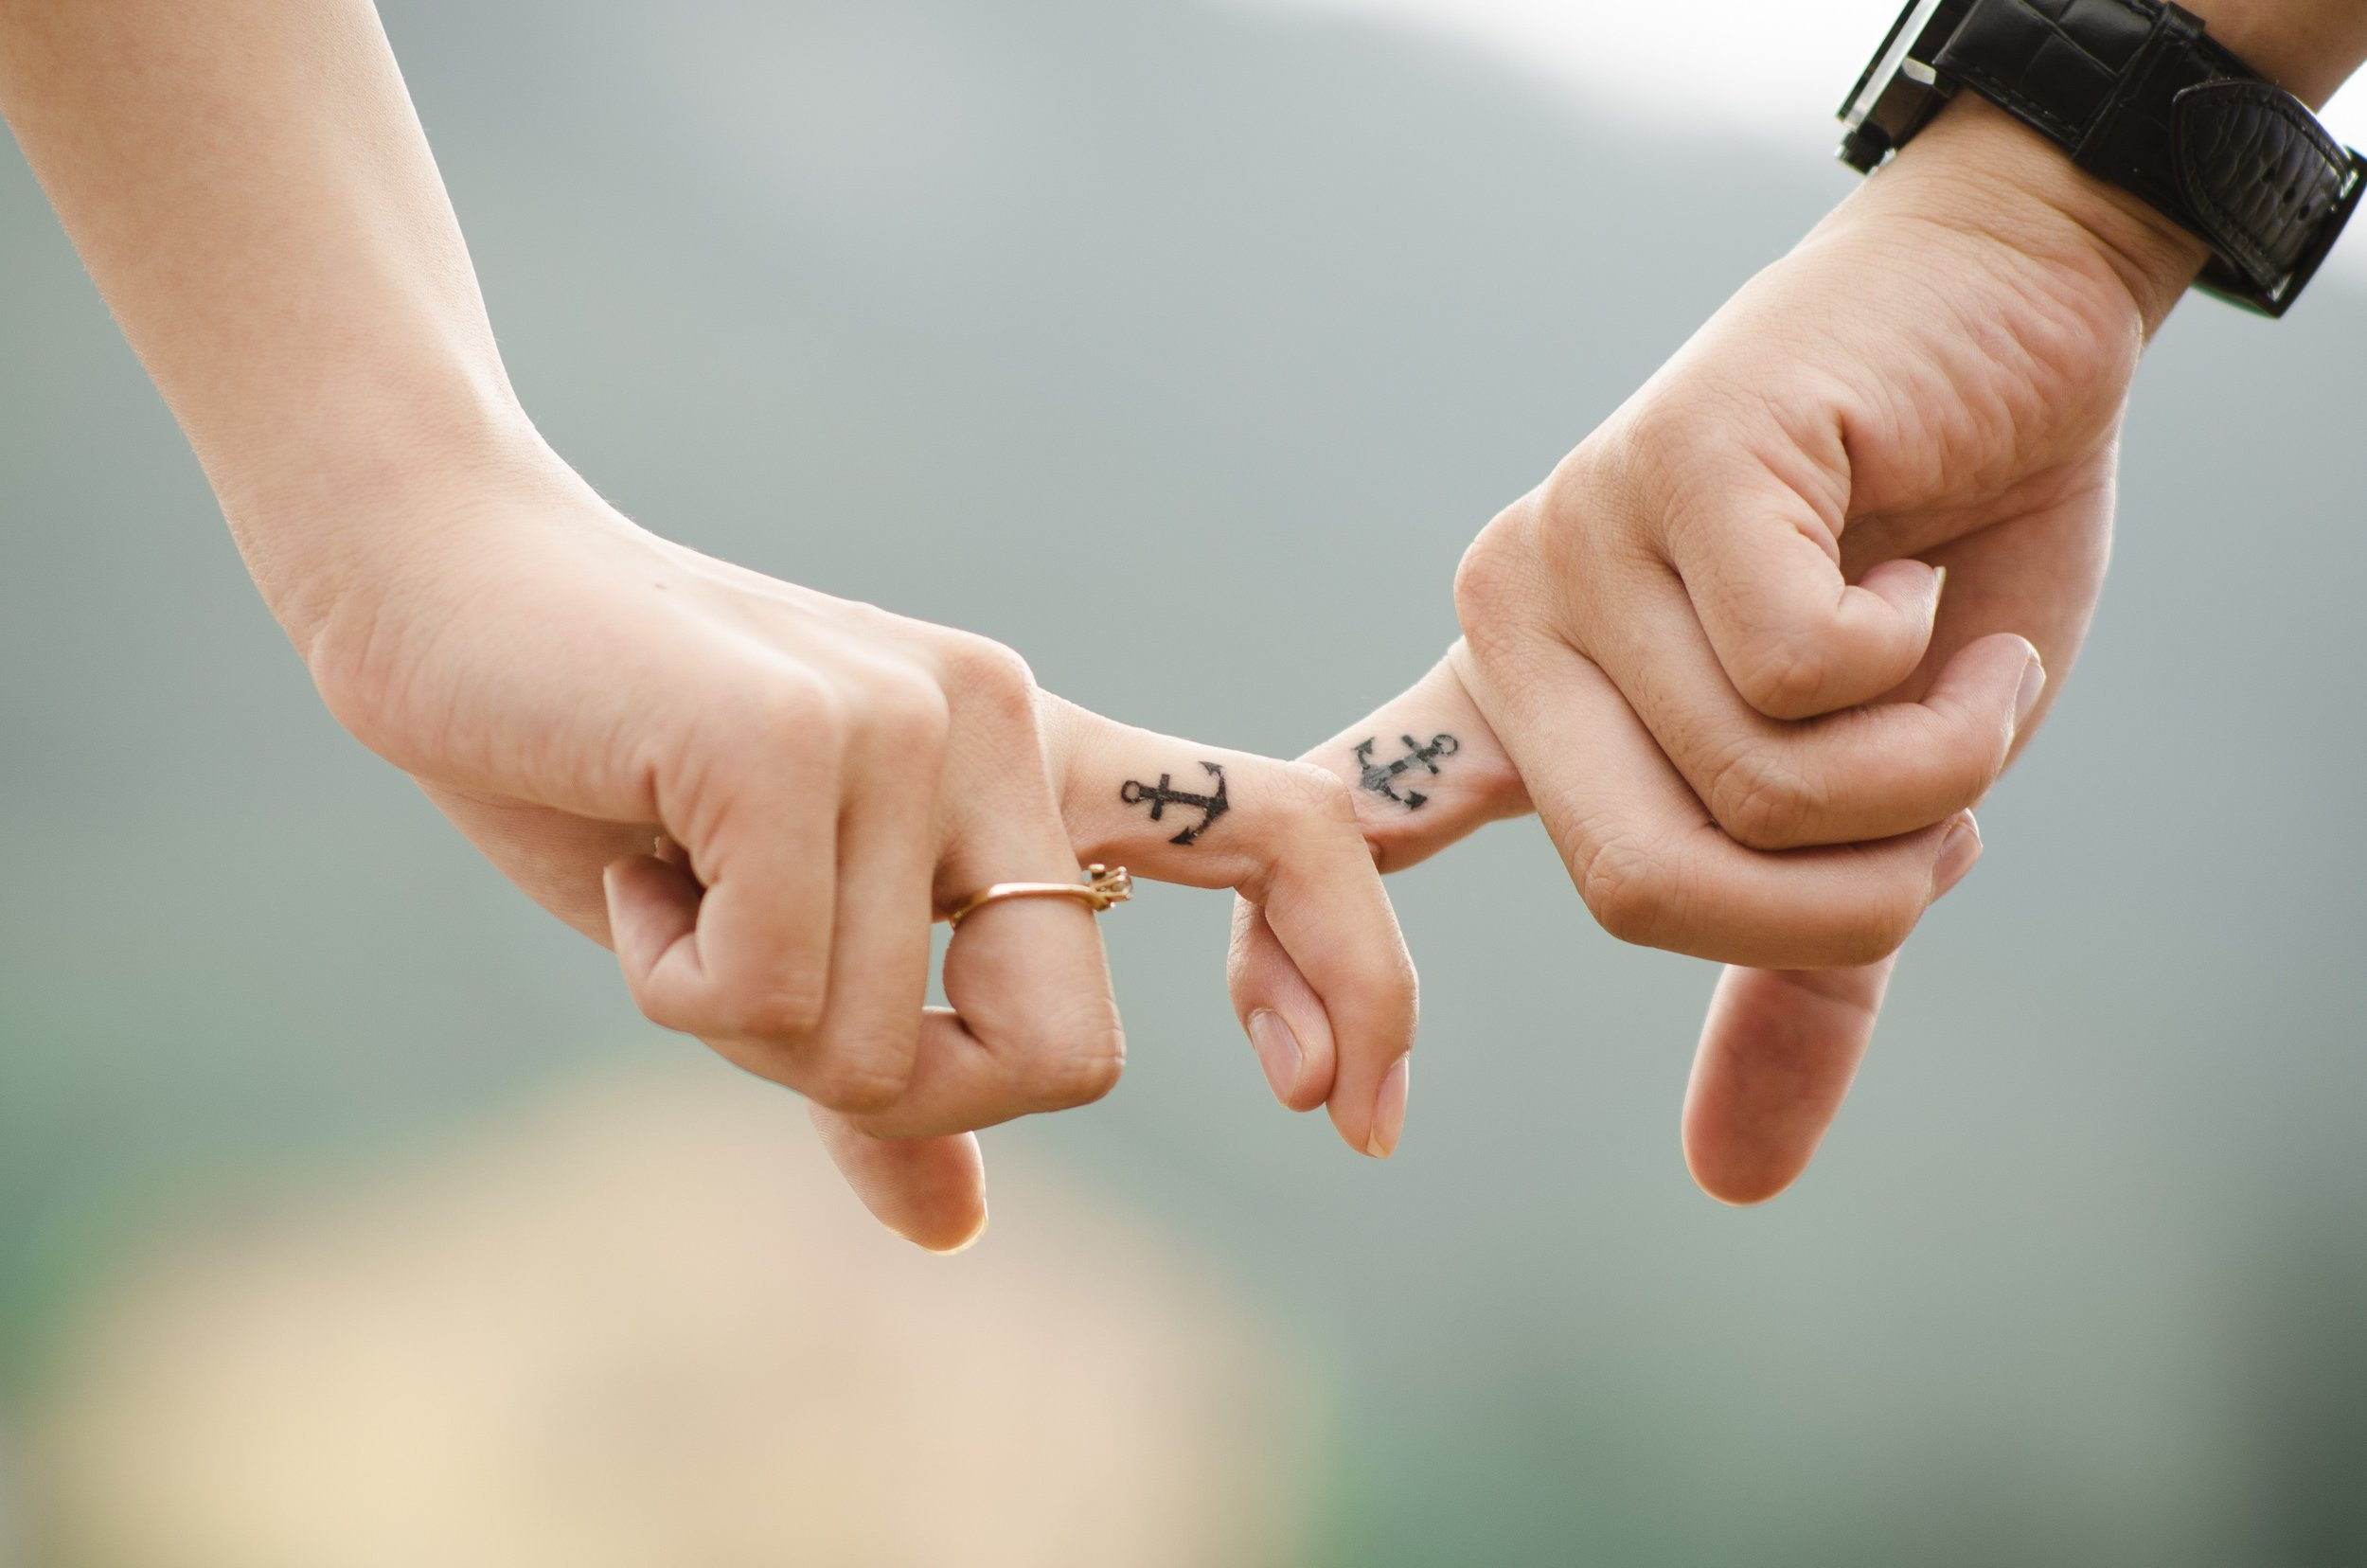 anchor-couple-fingers-38870.jpg